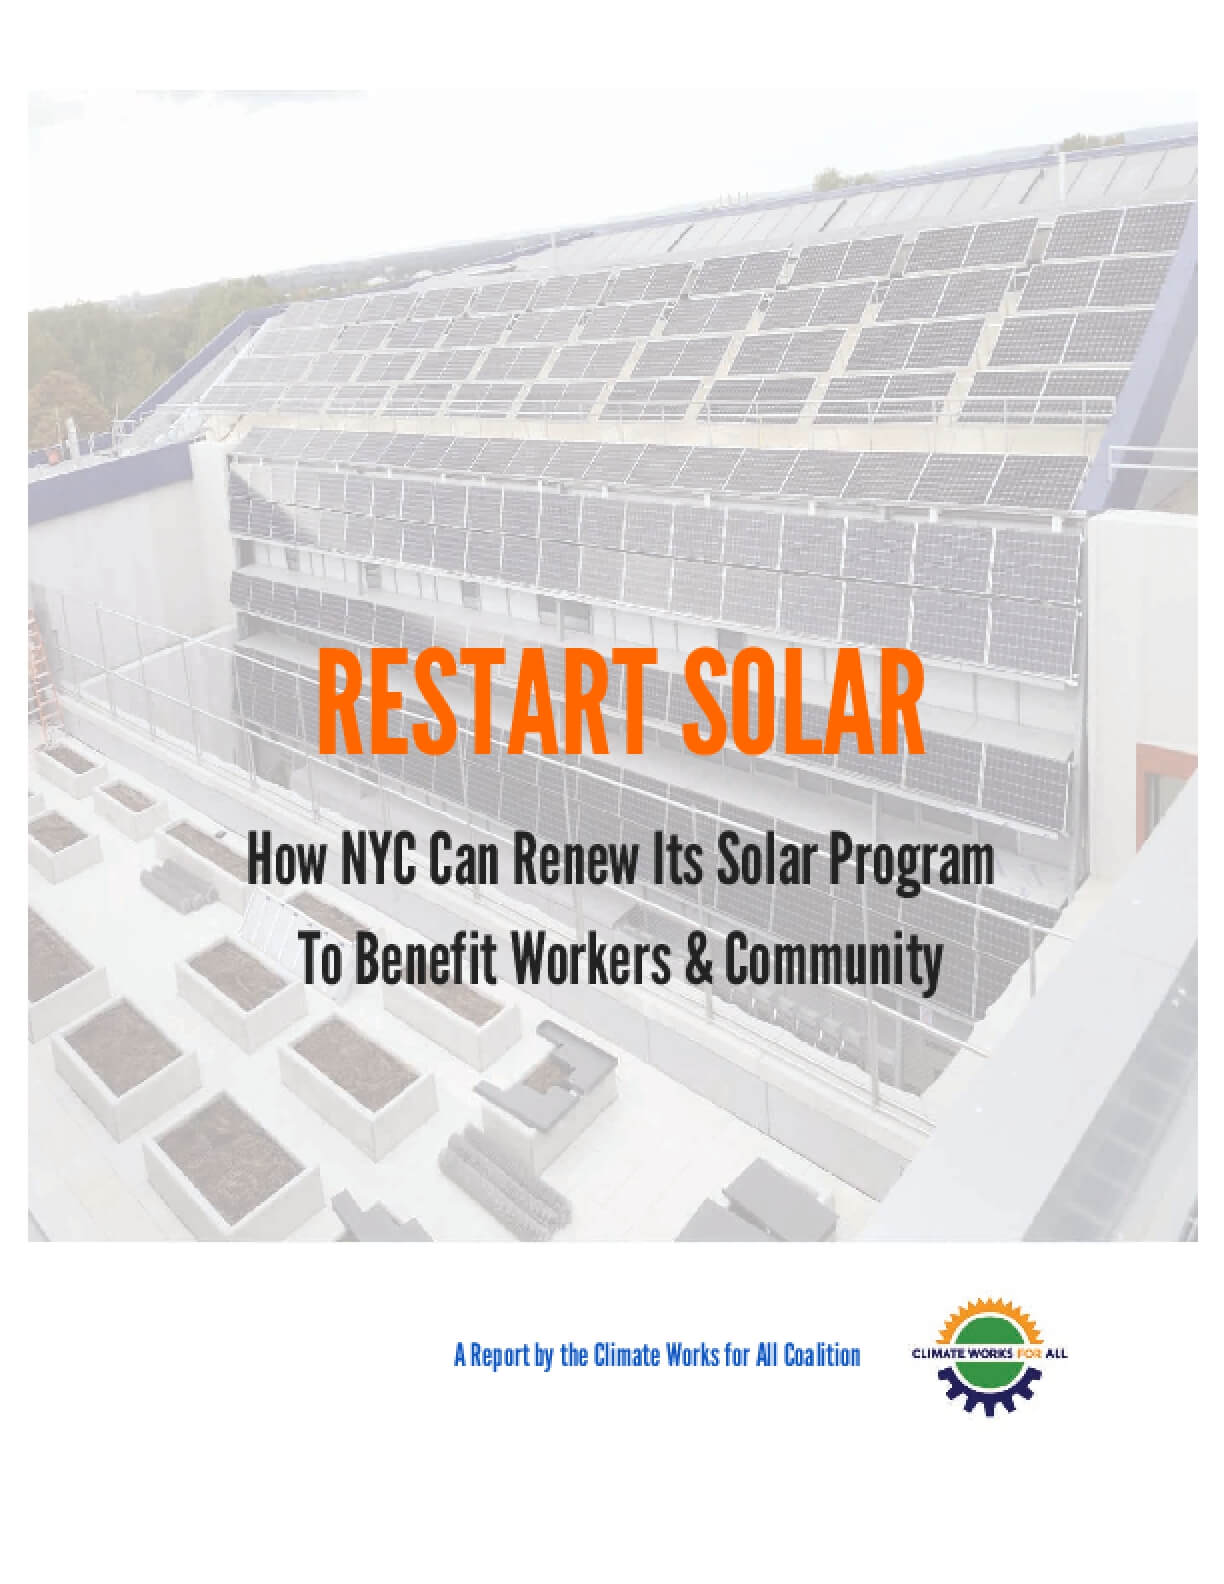 Restart Solar: How NYC Can Renew Its Solar Program To Benefit Workers & Community